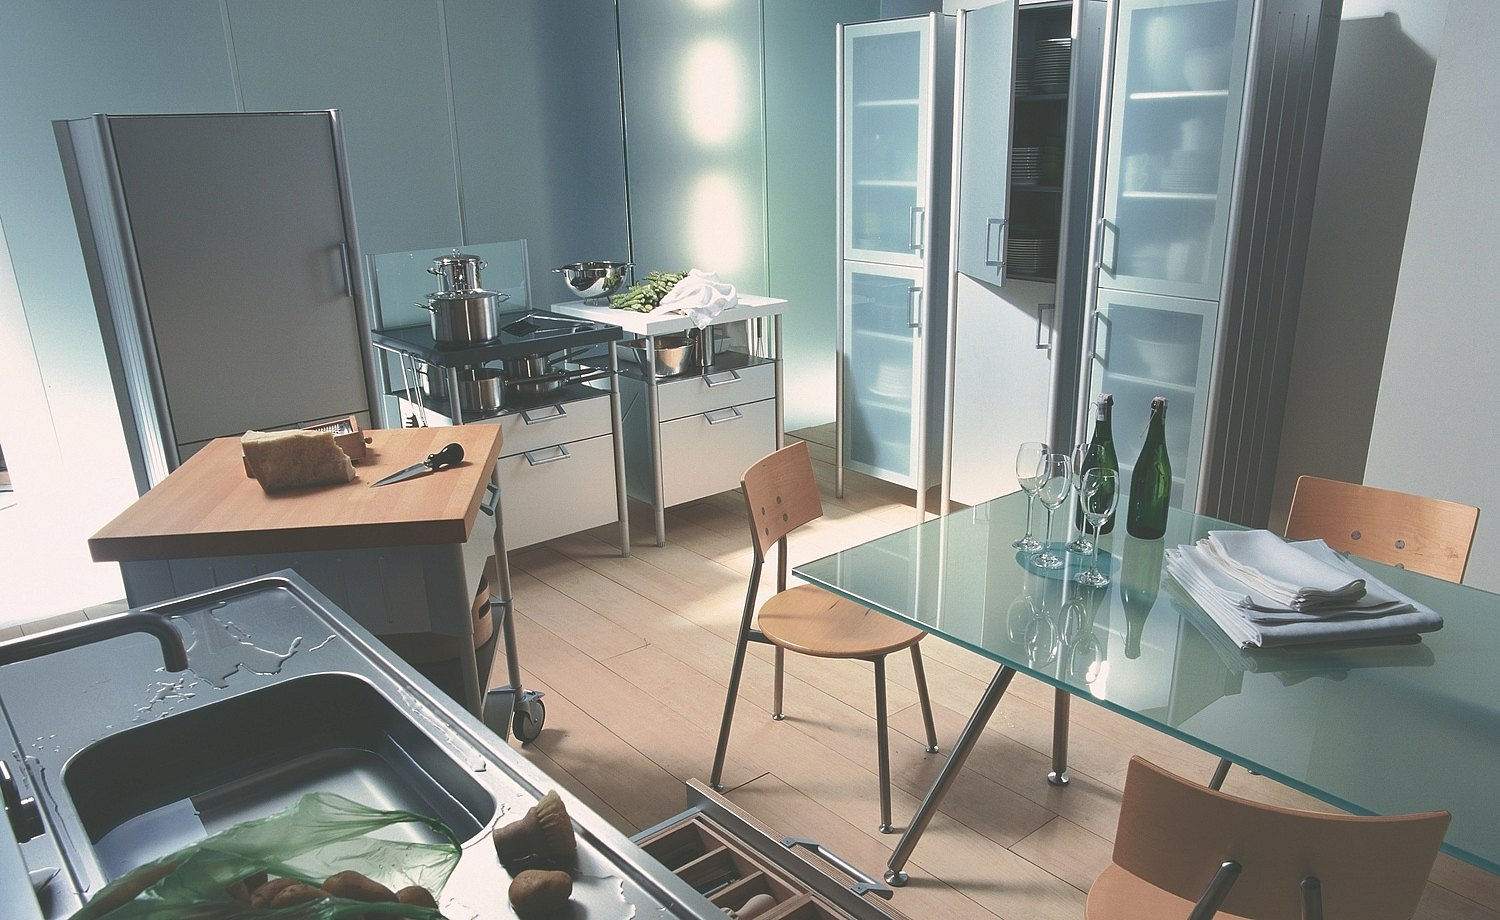 1997: Introduction of system 20: Modular, freely combinable kitchen elements for stove, water point, and preparation